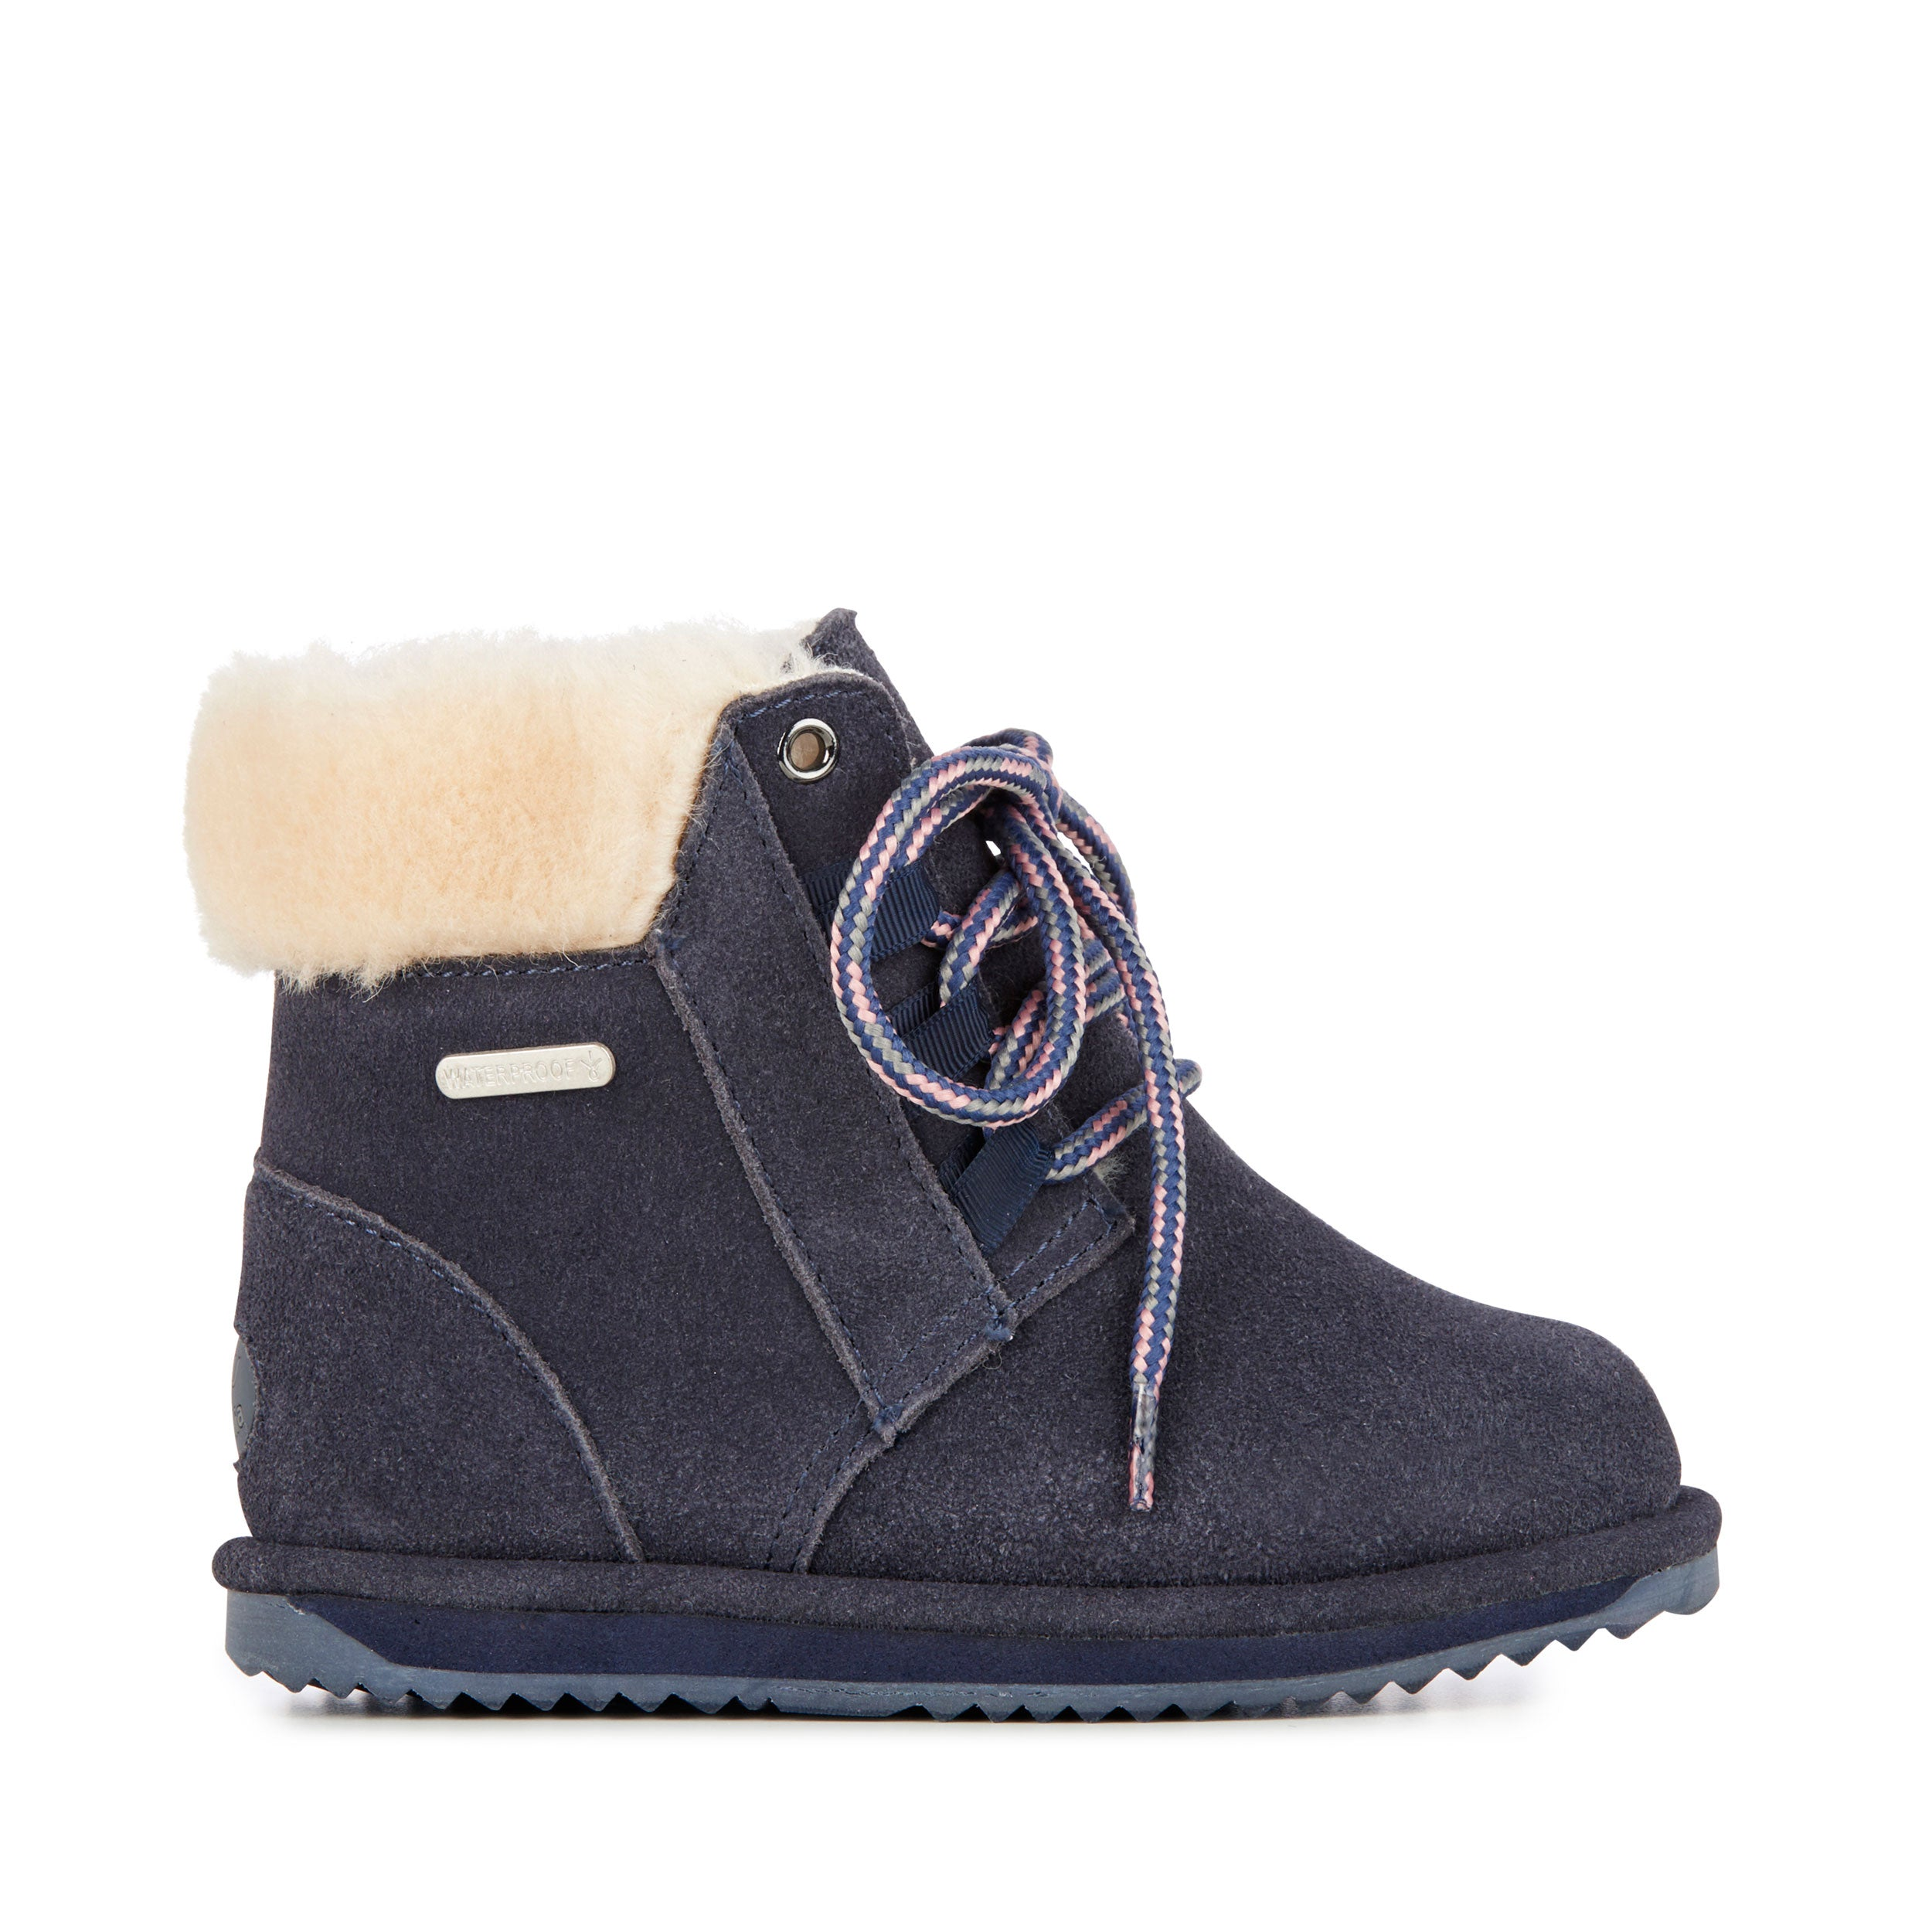 EMU Kid's Waterproof Shoreline Indigo